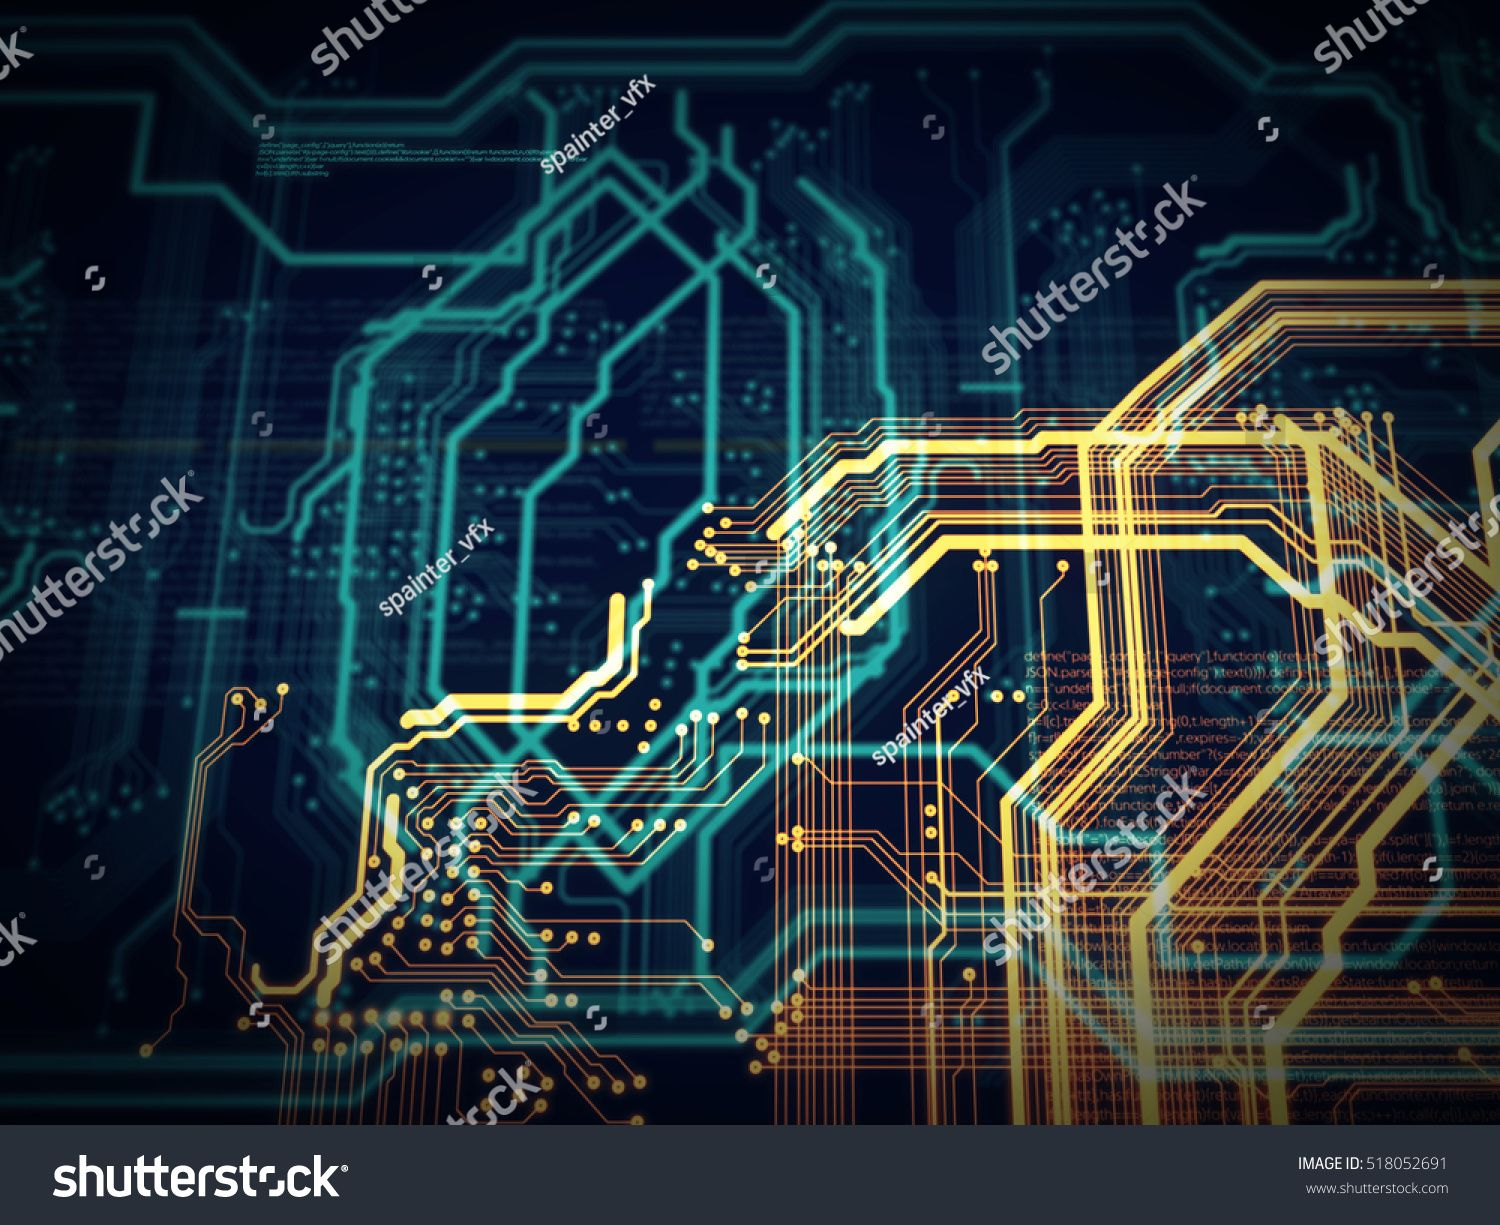 PCB, Code, HTML; web programming software background; 3D